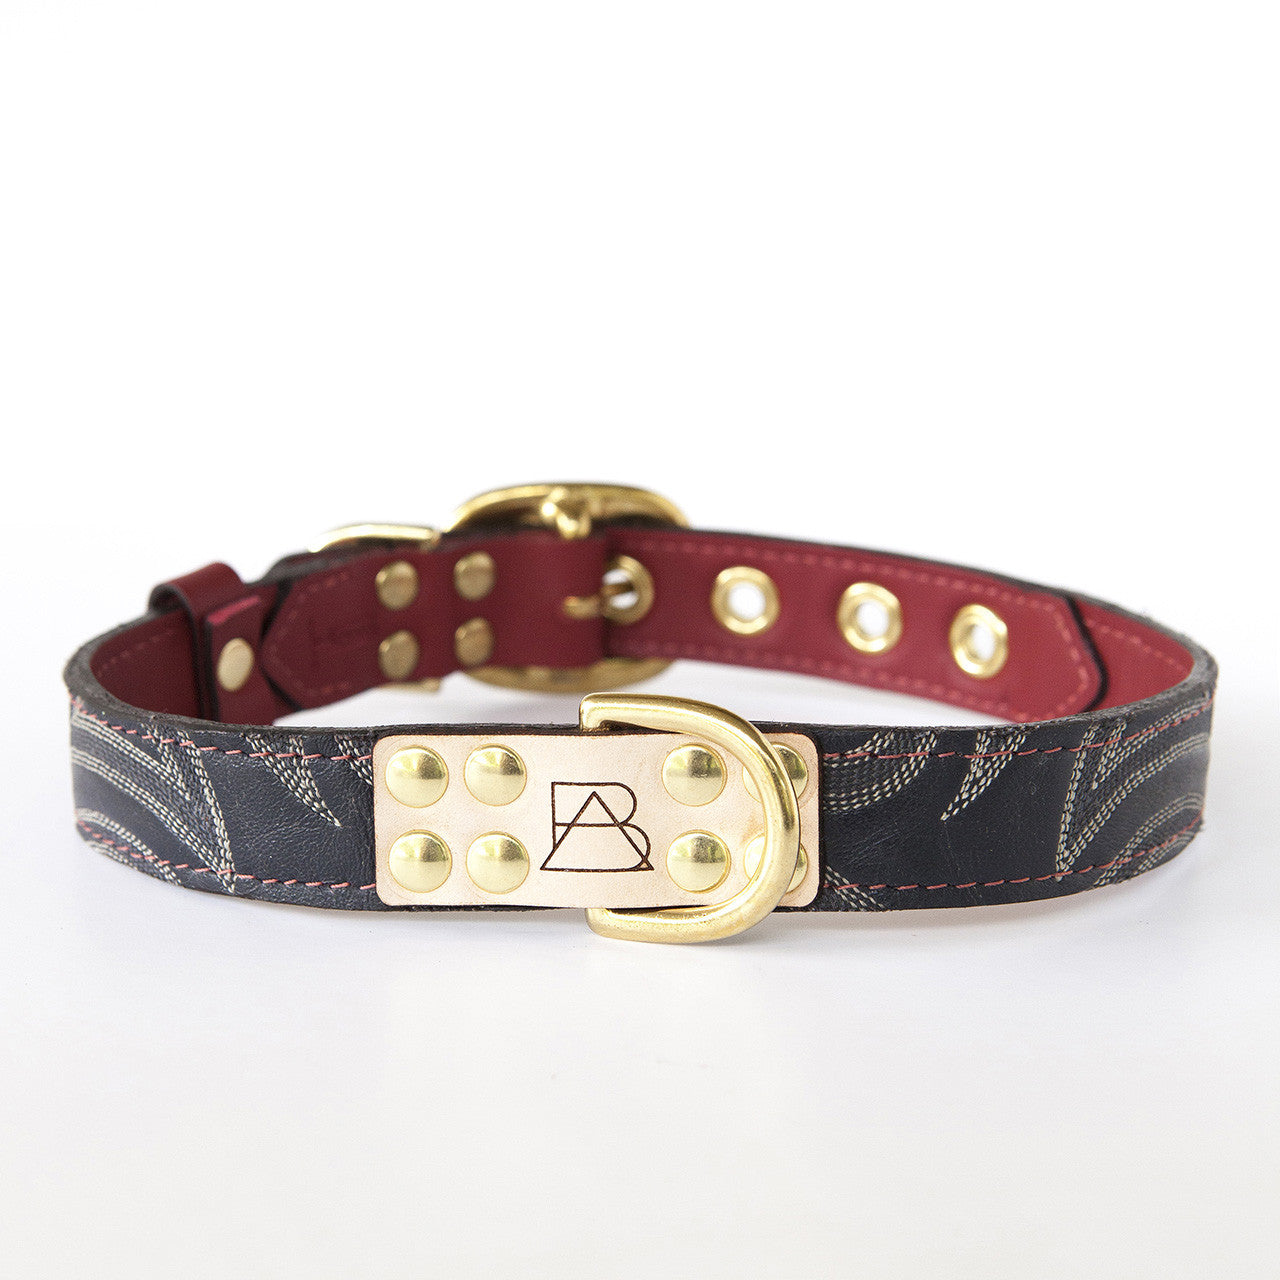 Ruby Red Dog Collar with Navy Leather + Ivory and Gray Stitching (front view)